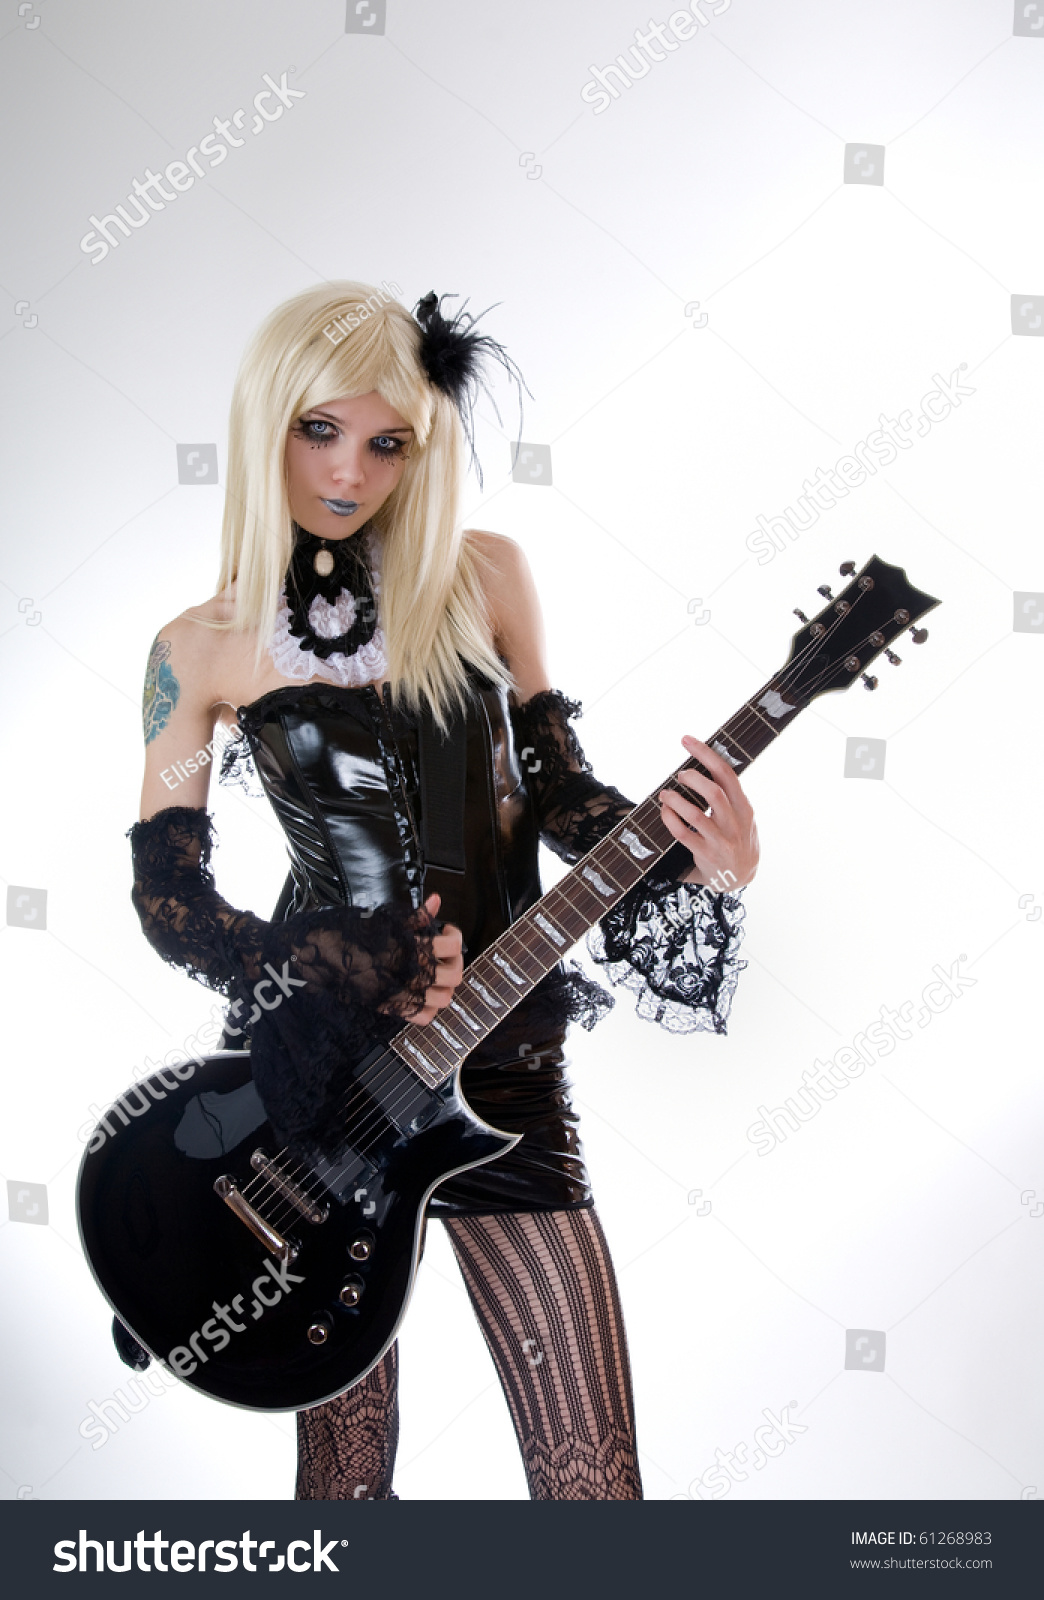 Beautiful Girl With Guitar Hd Wallpapers Sexy Gothic Girl With Guitar Studio Shot Over White